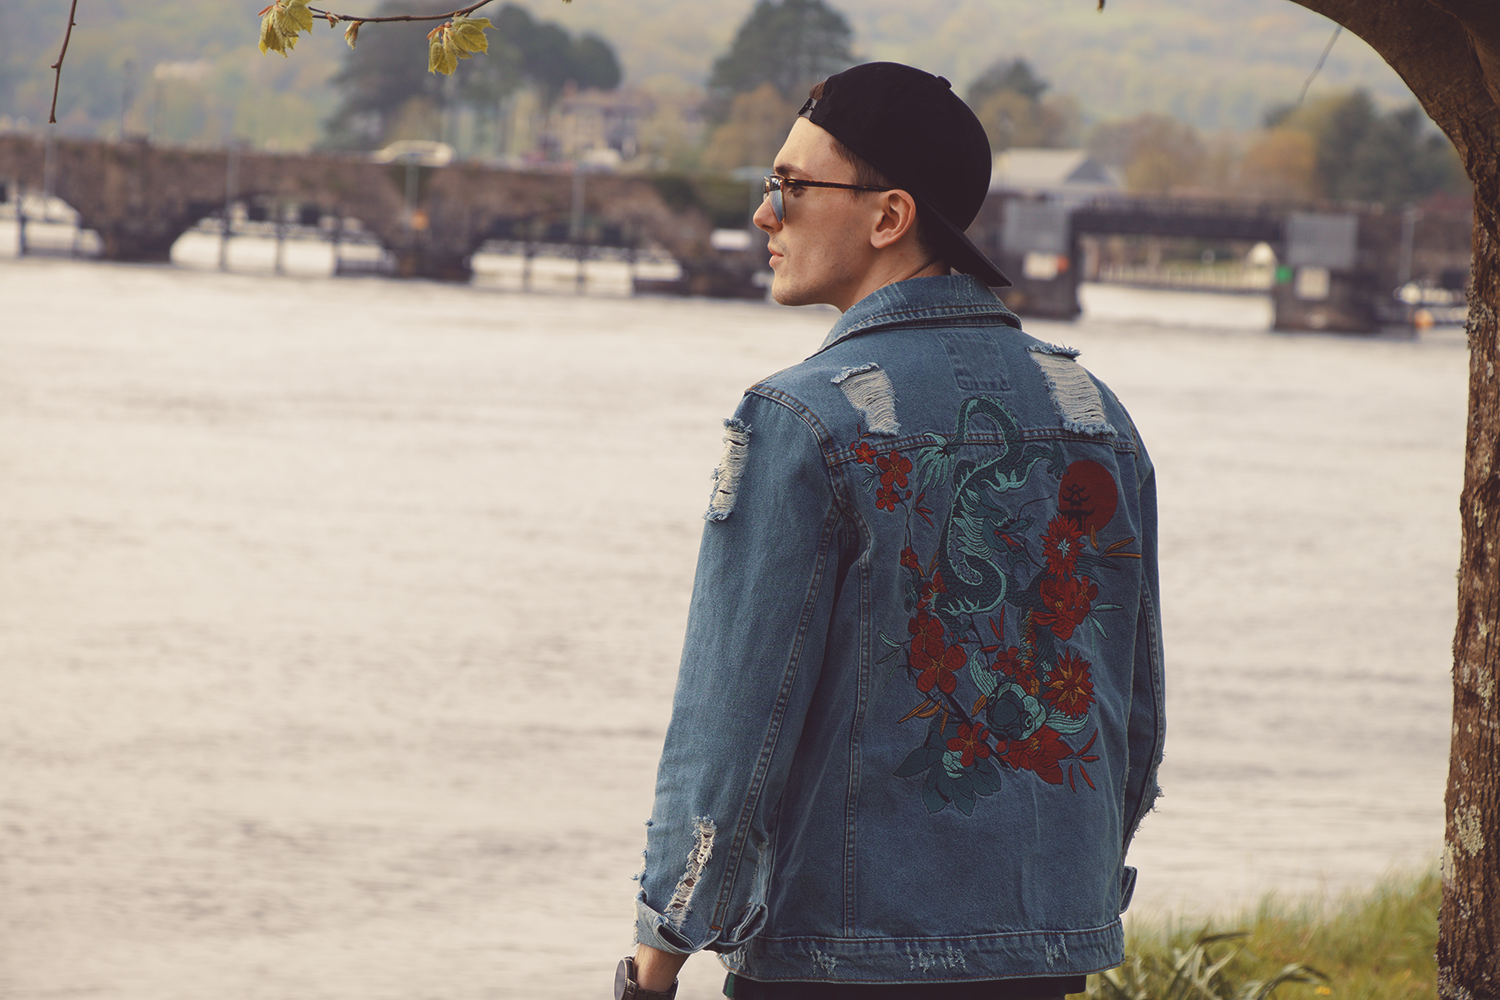 BoohooMan Denim Jacket | Sam Squire UK Male Fashion Blog